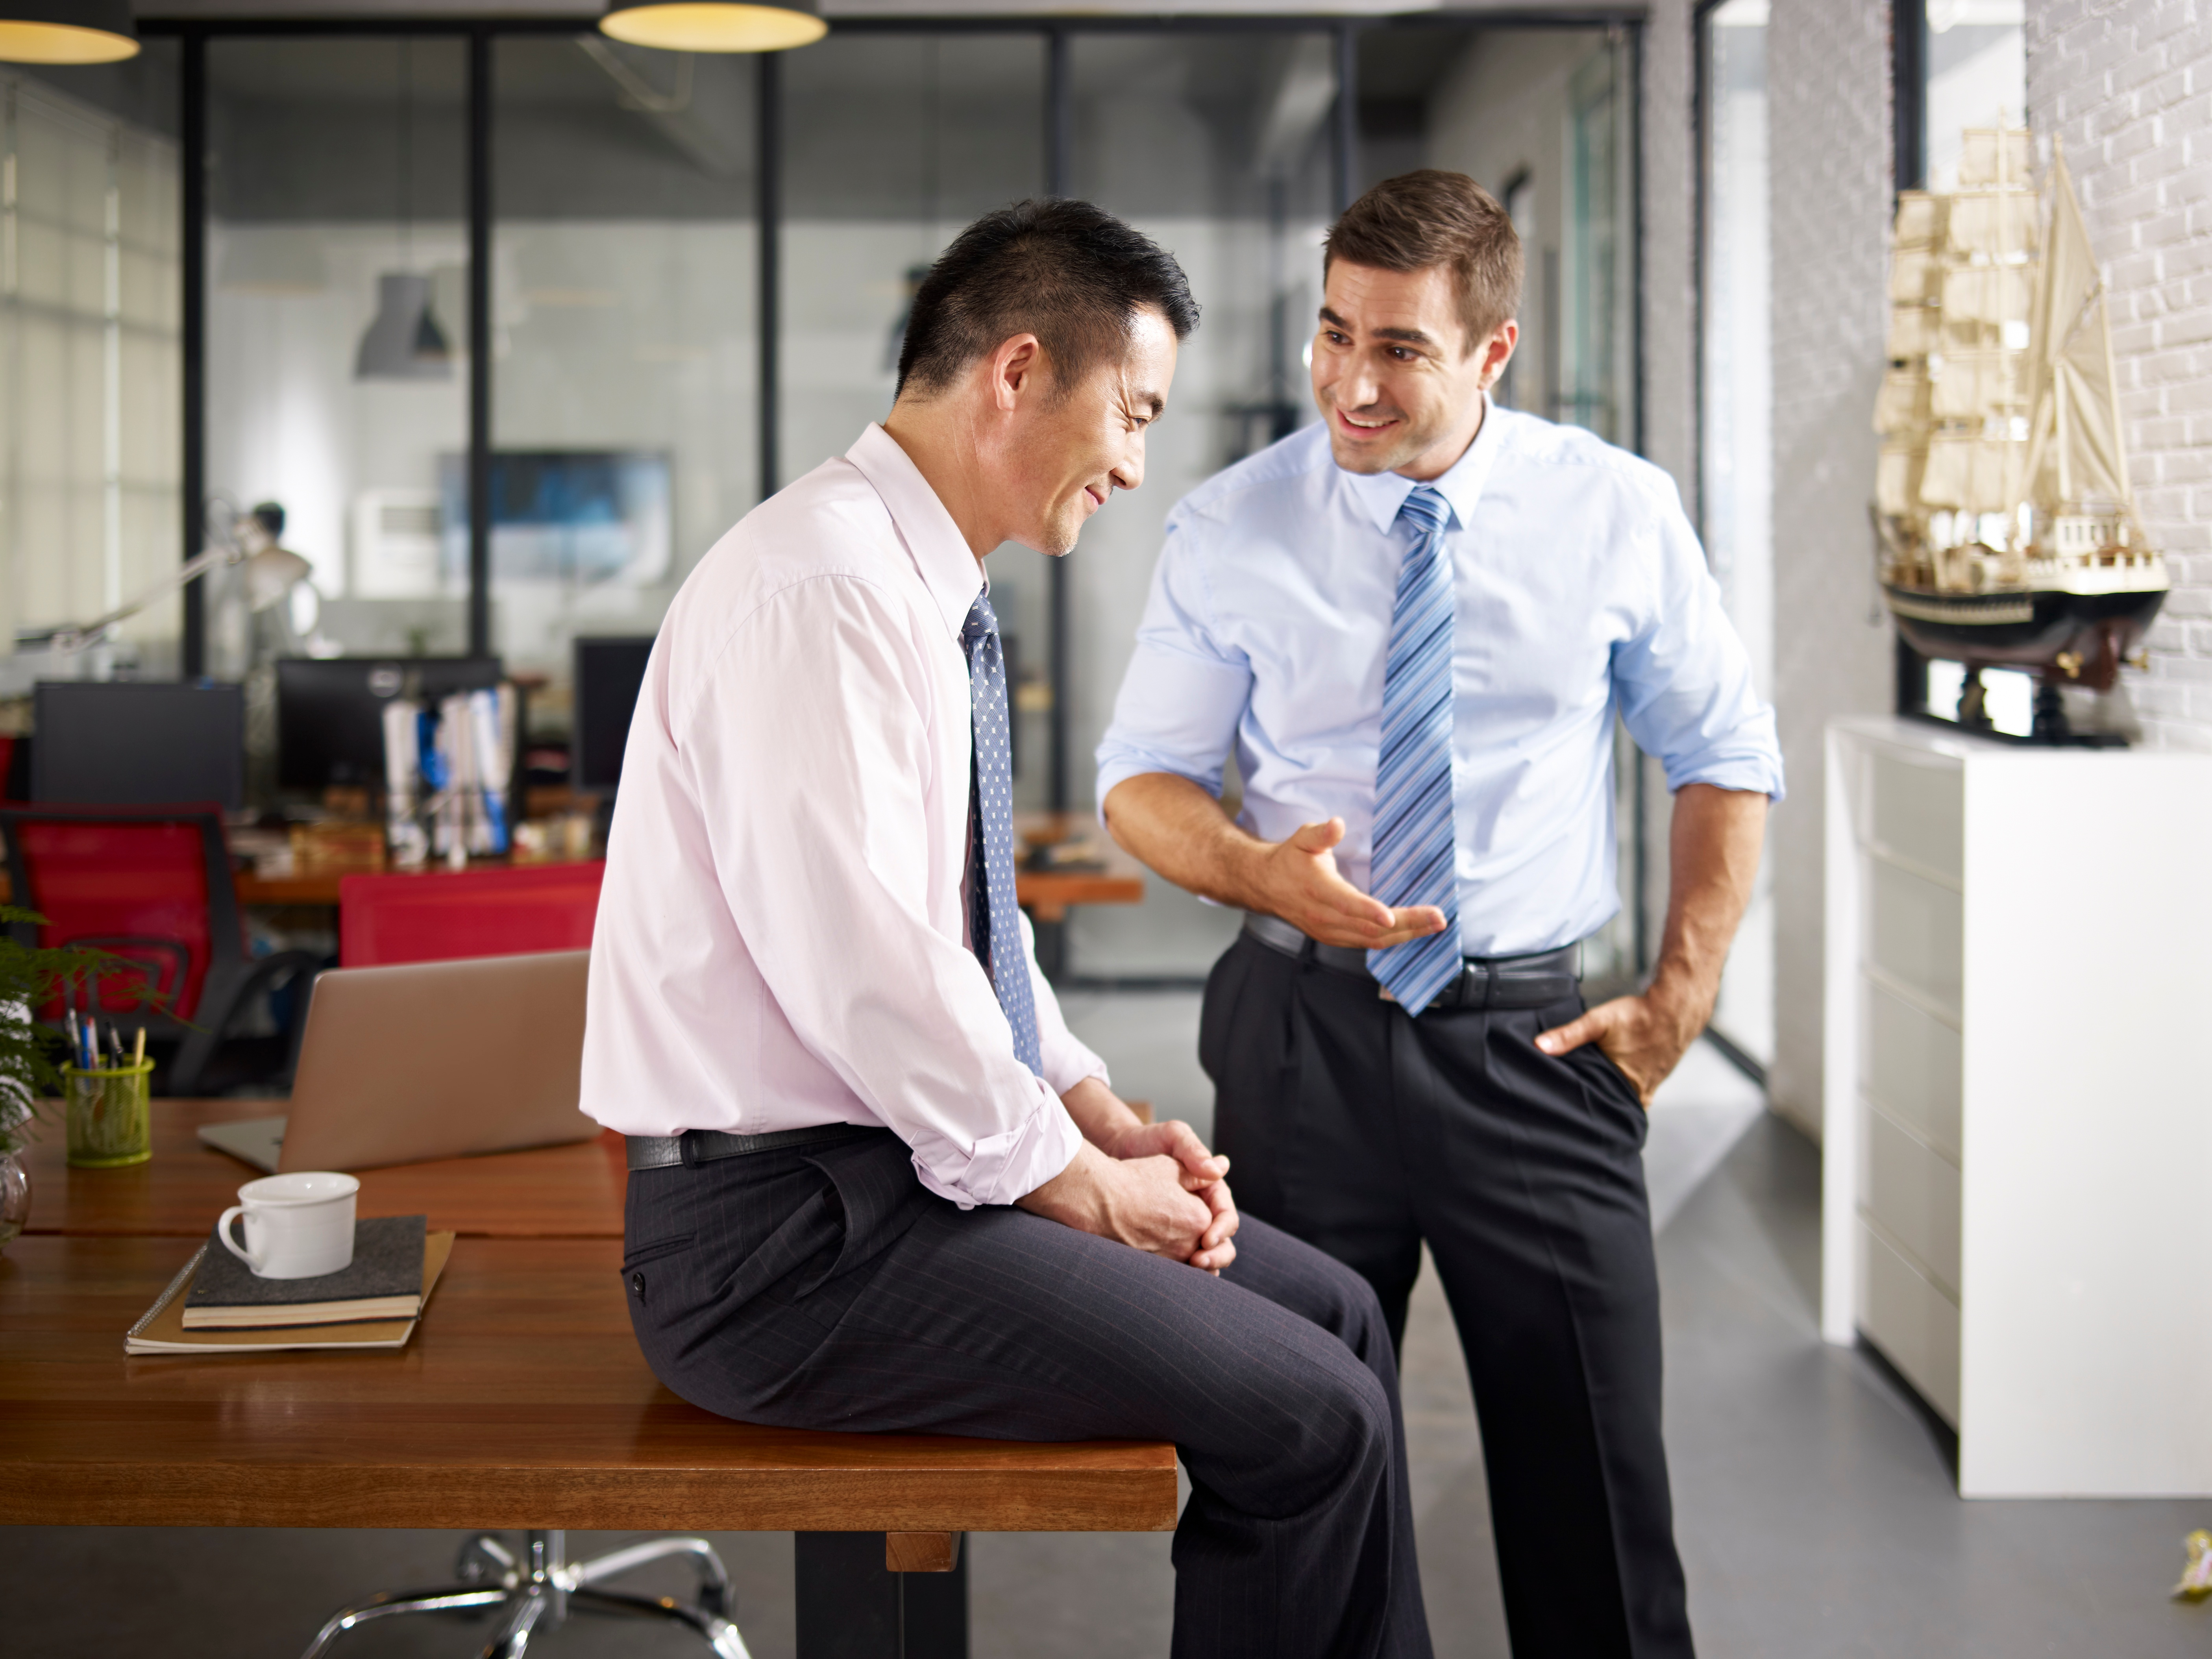 asian-and-caucasian-colleagues-talking-in-office-499721966_5620x4215